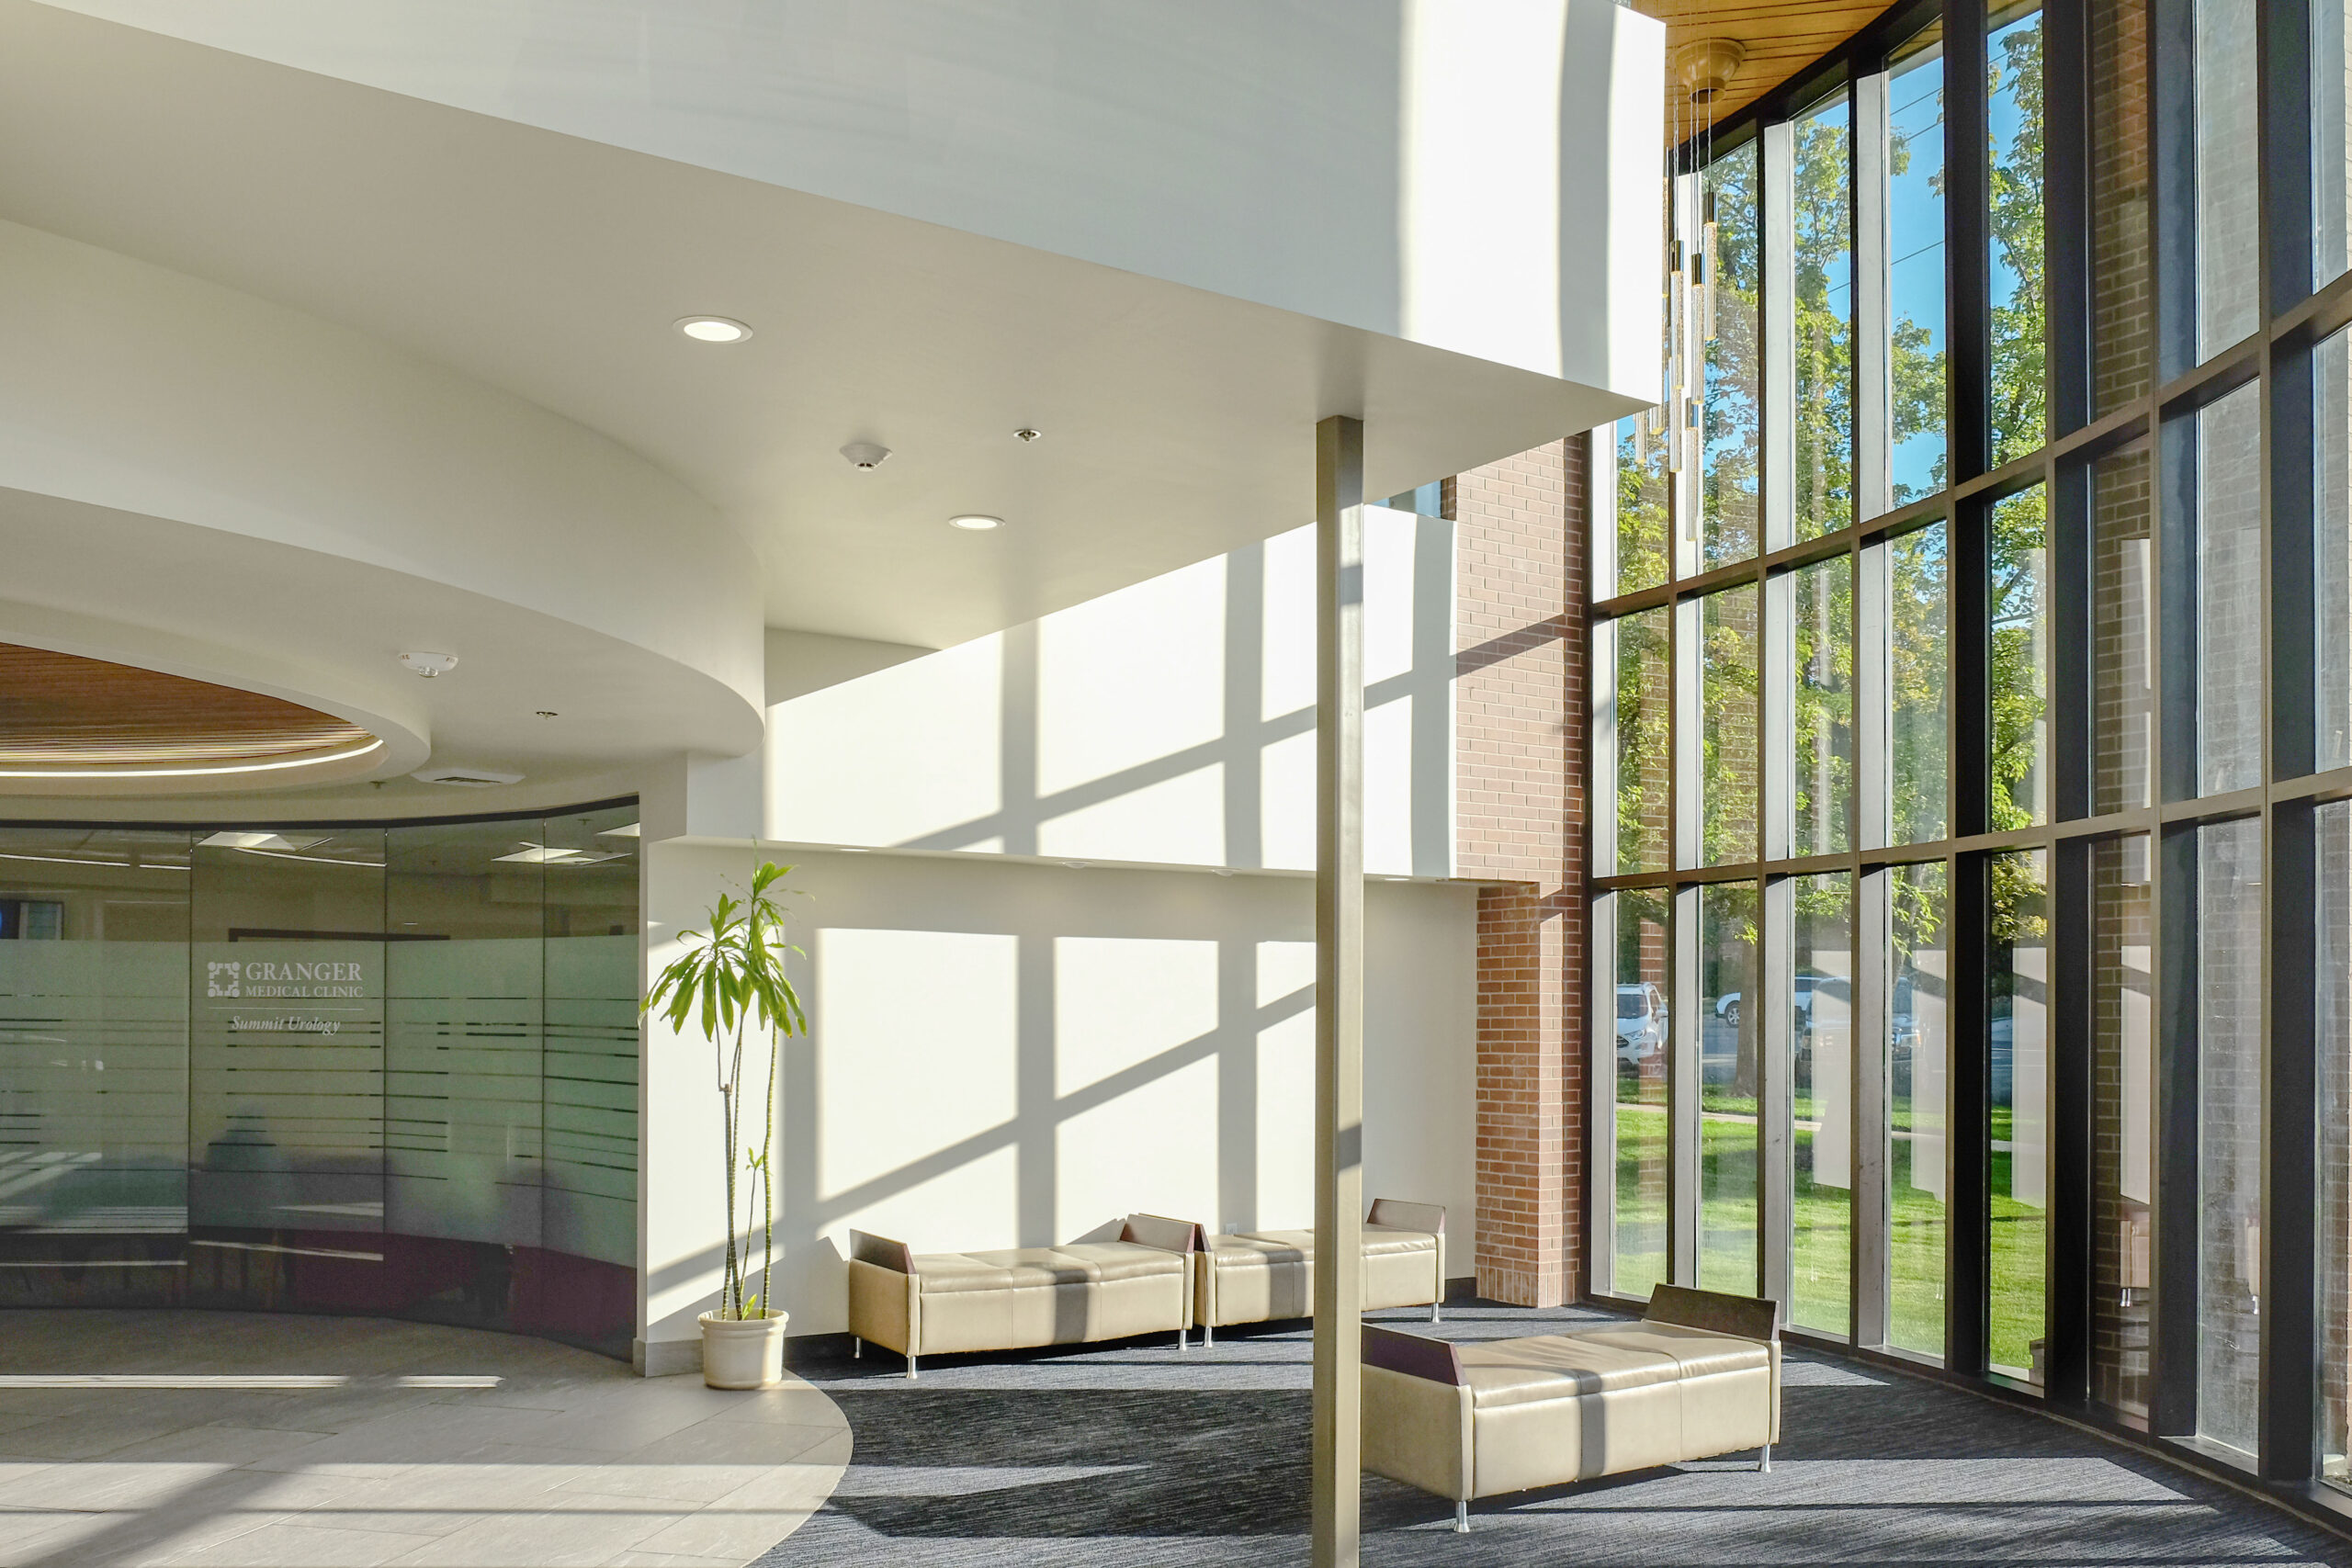 Medical office building design showing two-story atrium with natural light over sitting area near elevators.